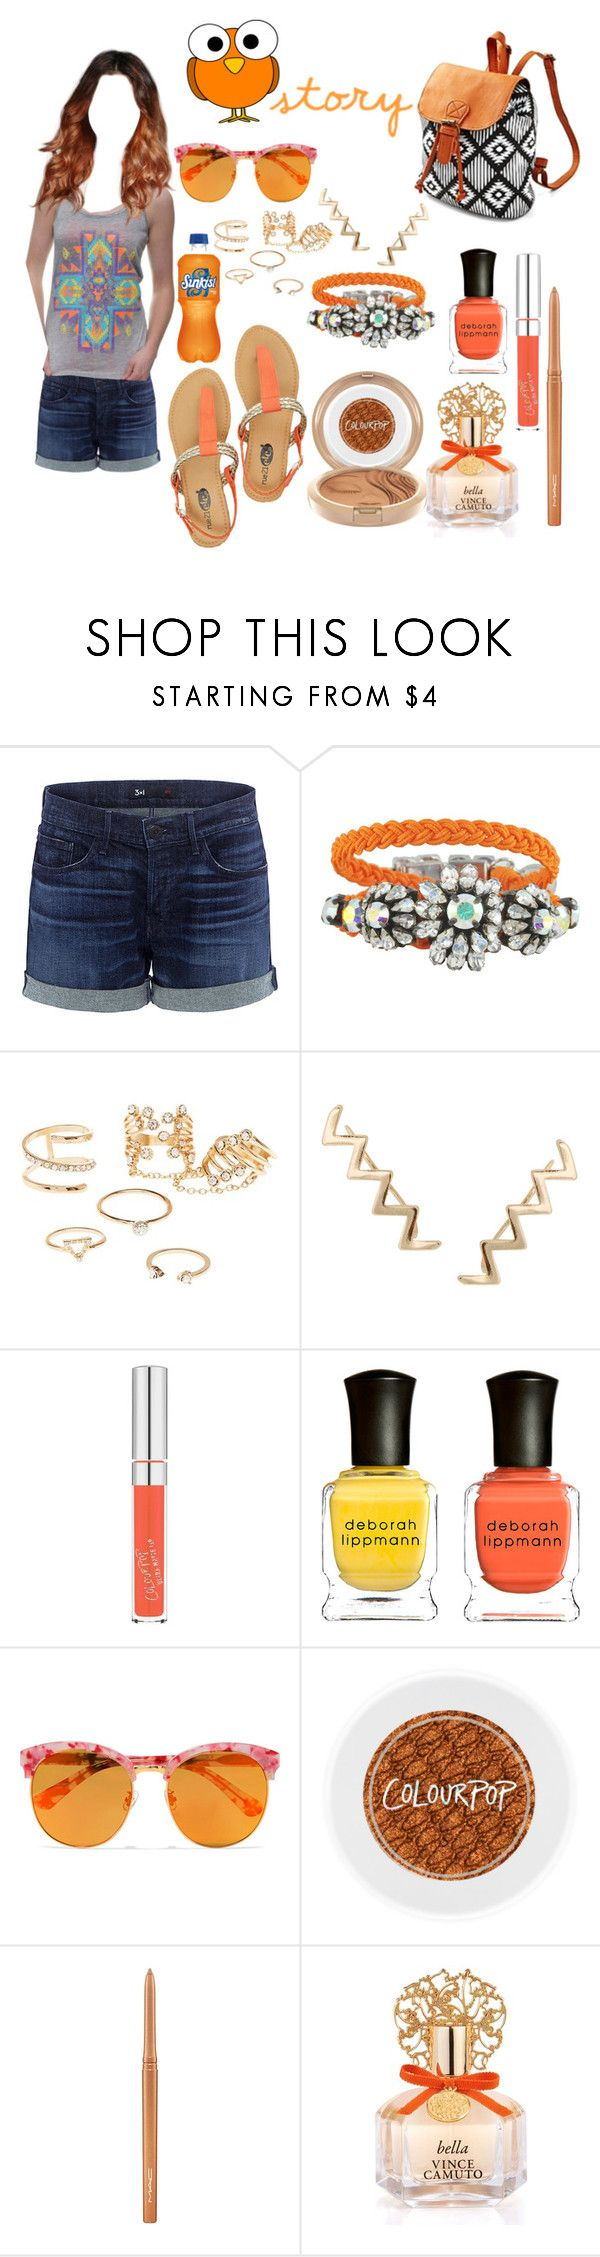 """""""STORY"""" by baileycalifornia ❤ liked on Polyvore featuring 3x1, Mariah Carey, Barakà, Charlotte Russe, Humble Chic, Deborah Lippmann, Gentle Monster, MAC Cosmetics, Vince Camuto and owl"""